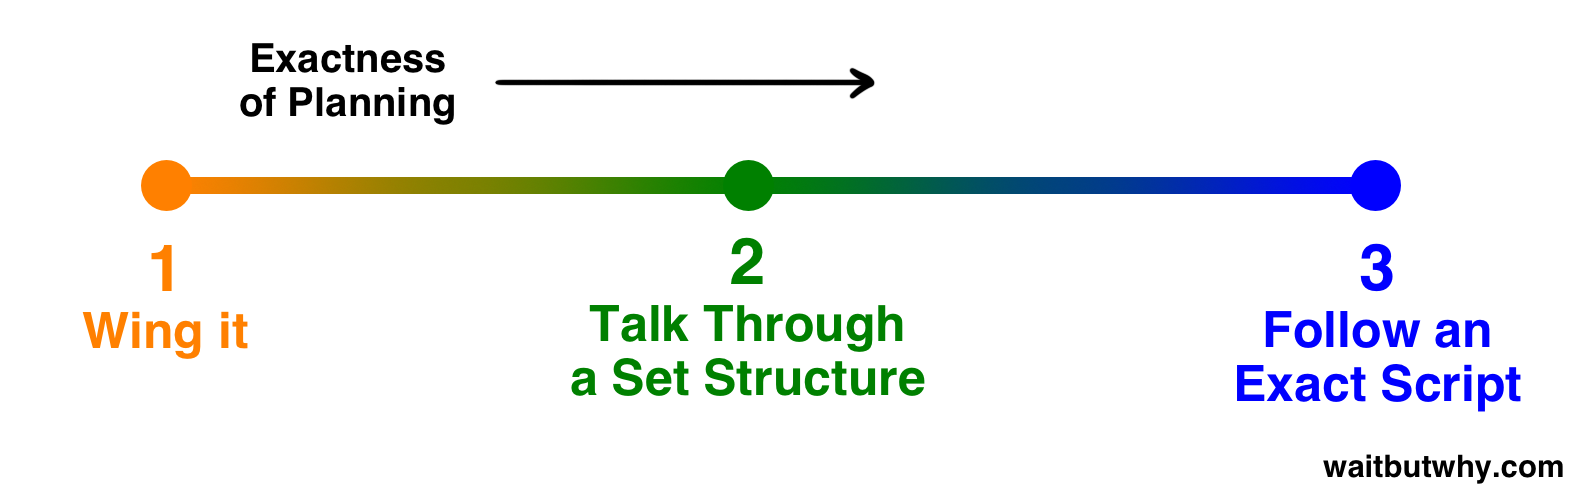 spectrum of exactness of planning: 1 wing it, 2 talk through a set structure, 3 follow an exact strict